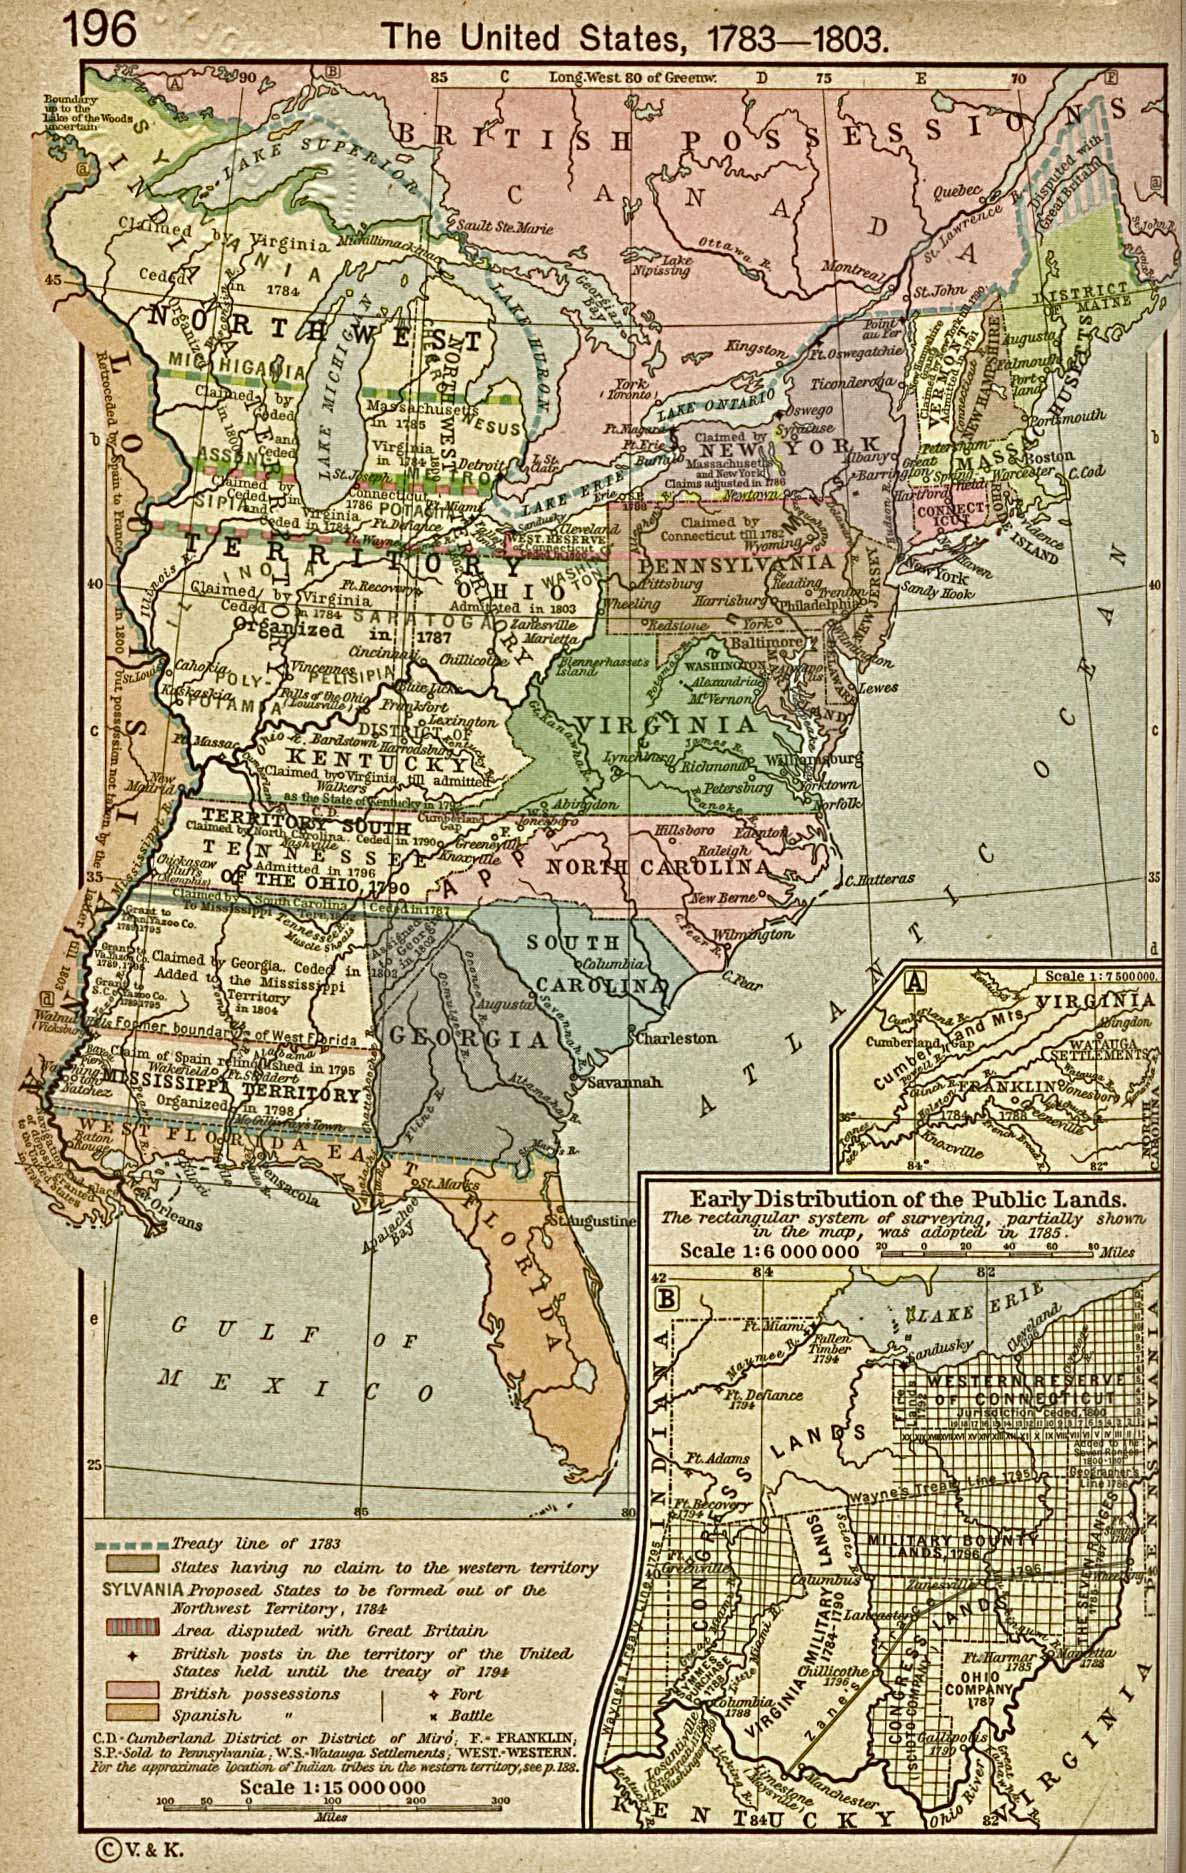 This map shows the United States as it existed between 1783 and 1803, with the State of Franklin in an inset.